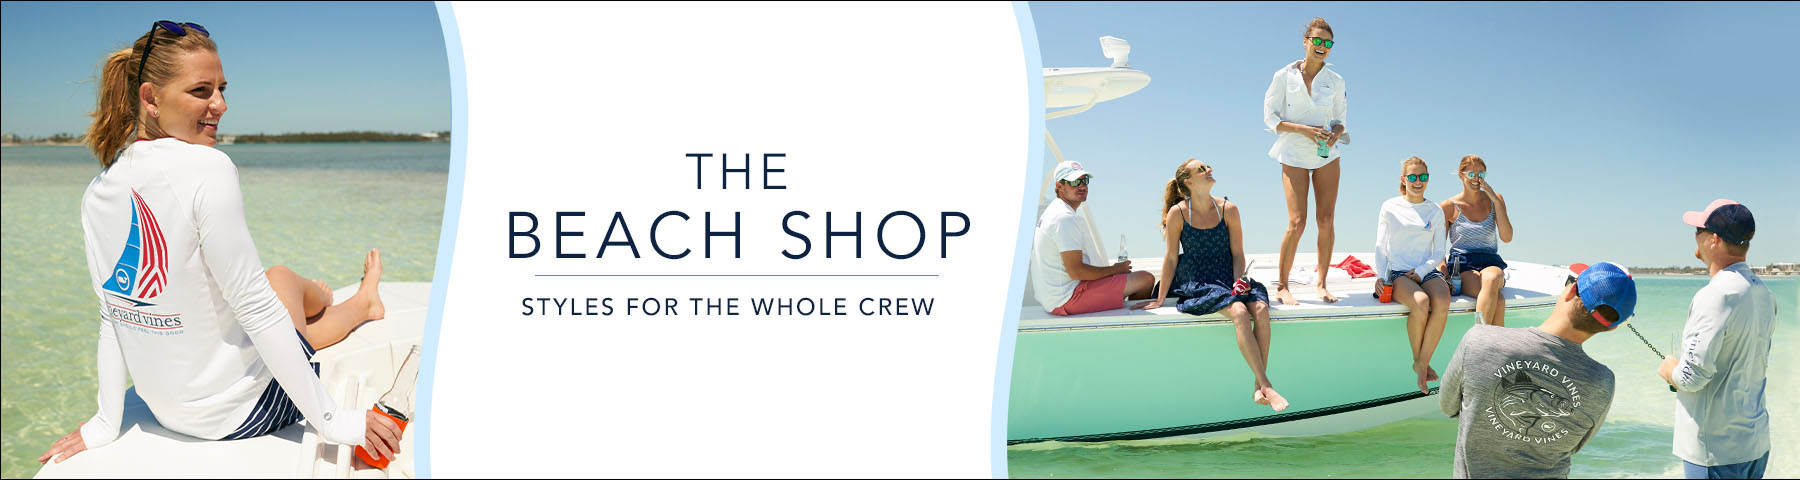 The beach shop. Styles for the whole crew.